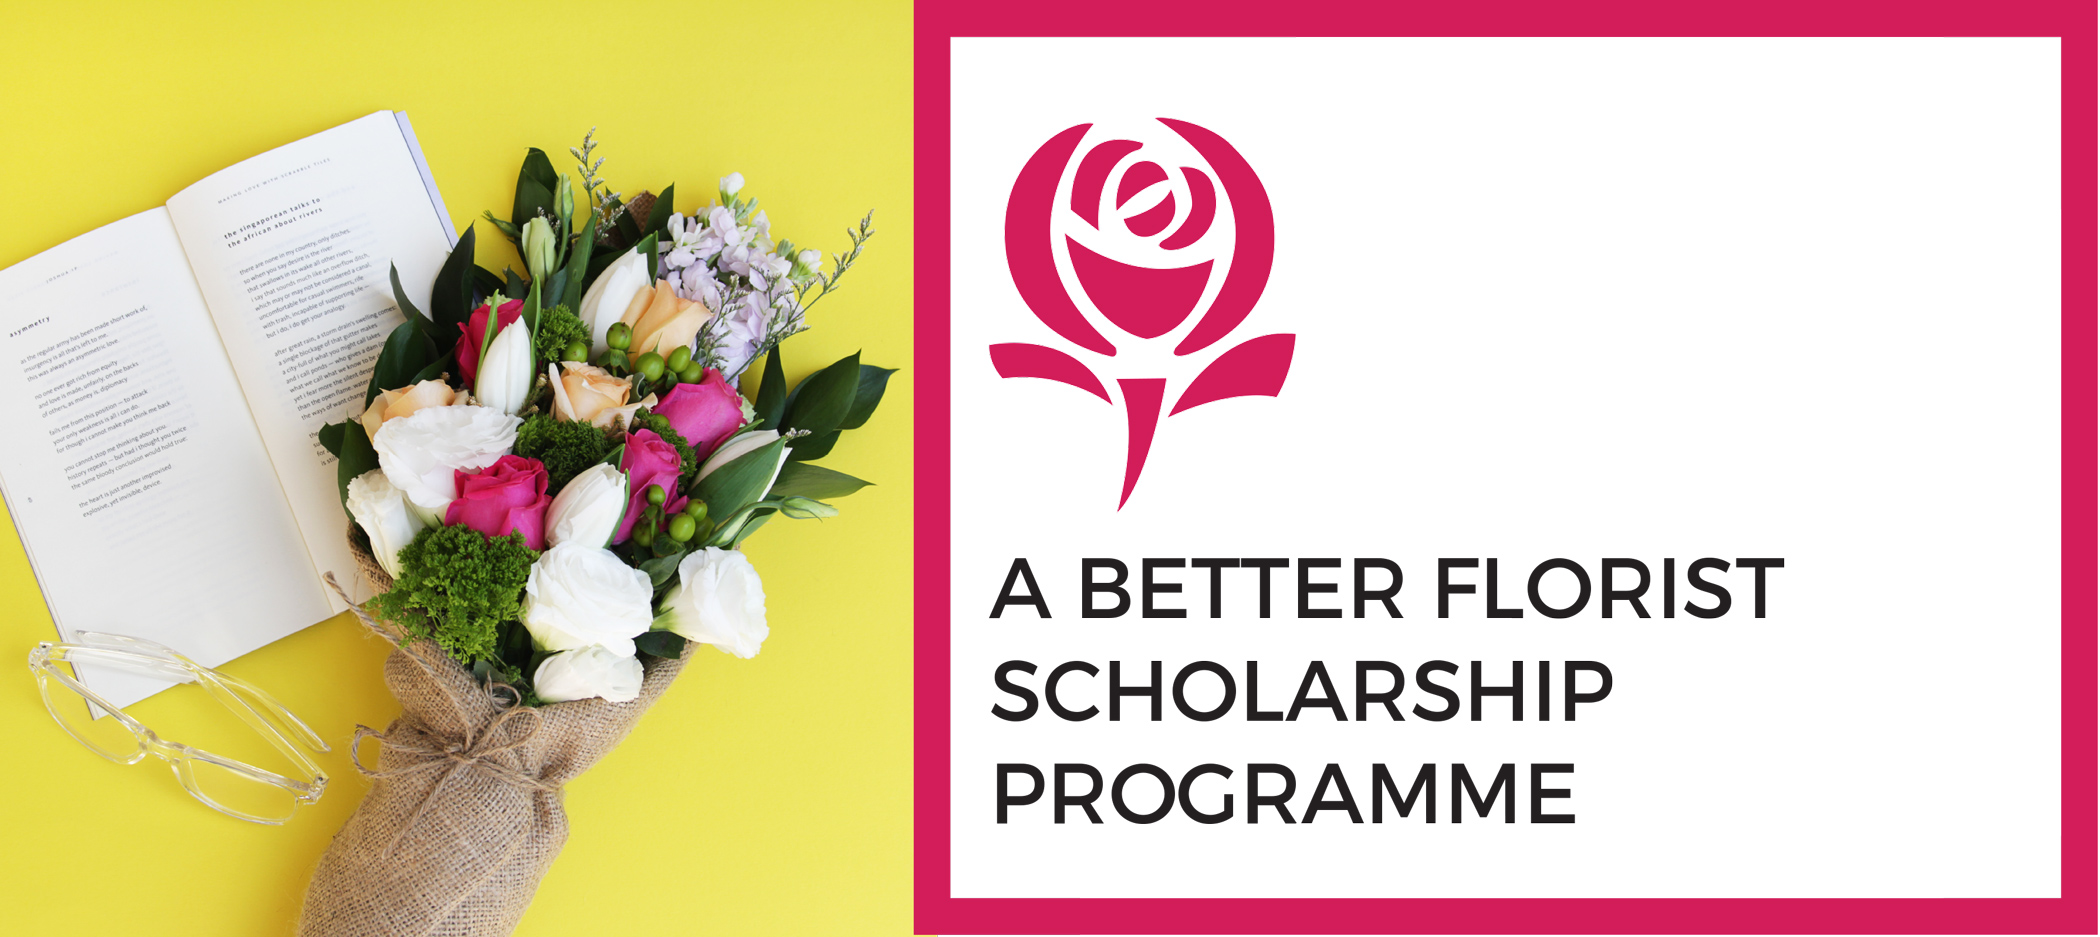 Scholarships abetterflorist general information on a better florist izmirmasajfo